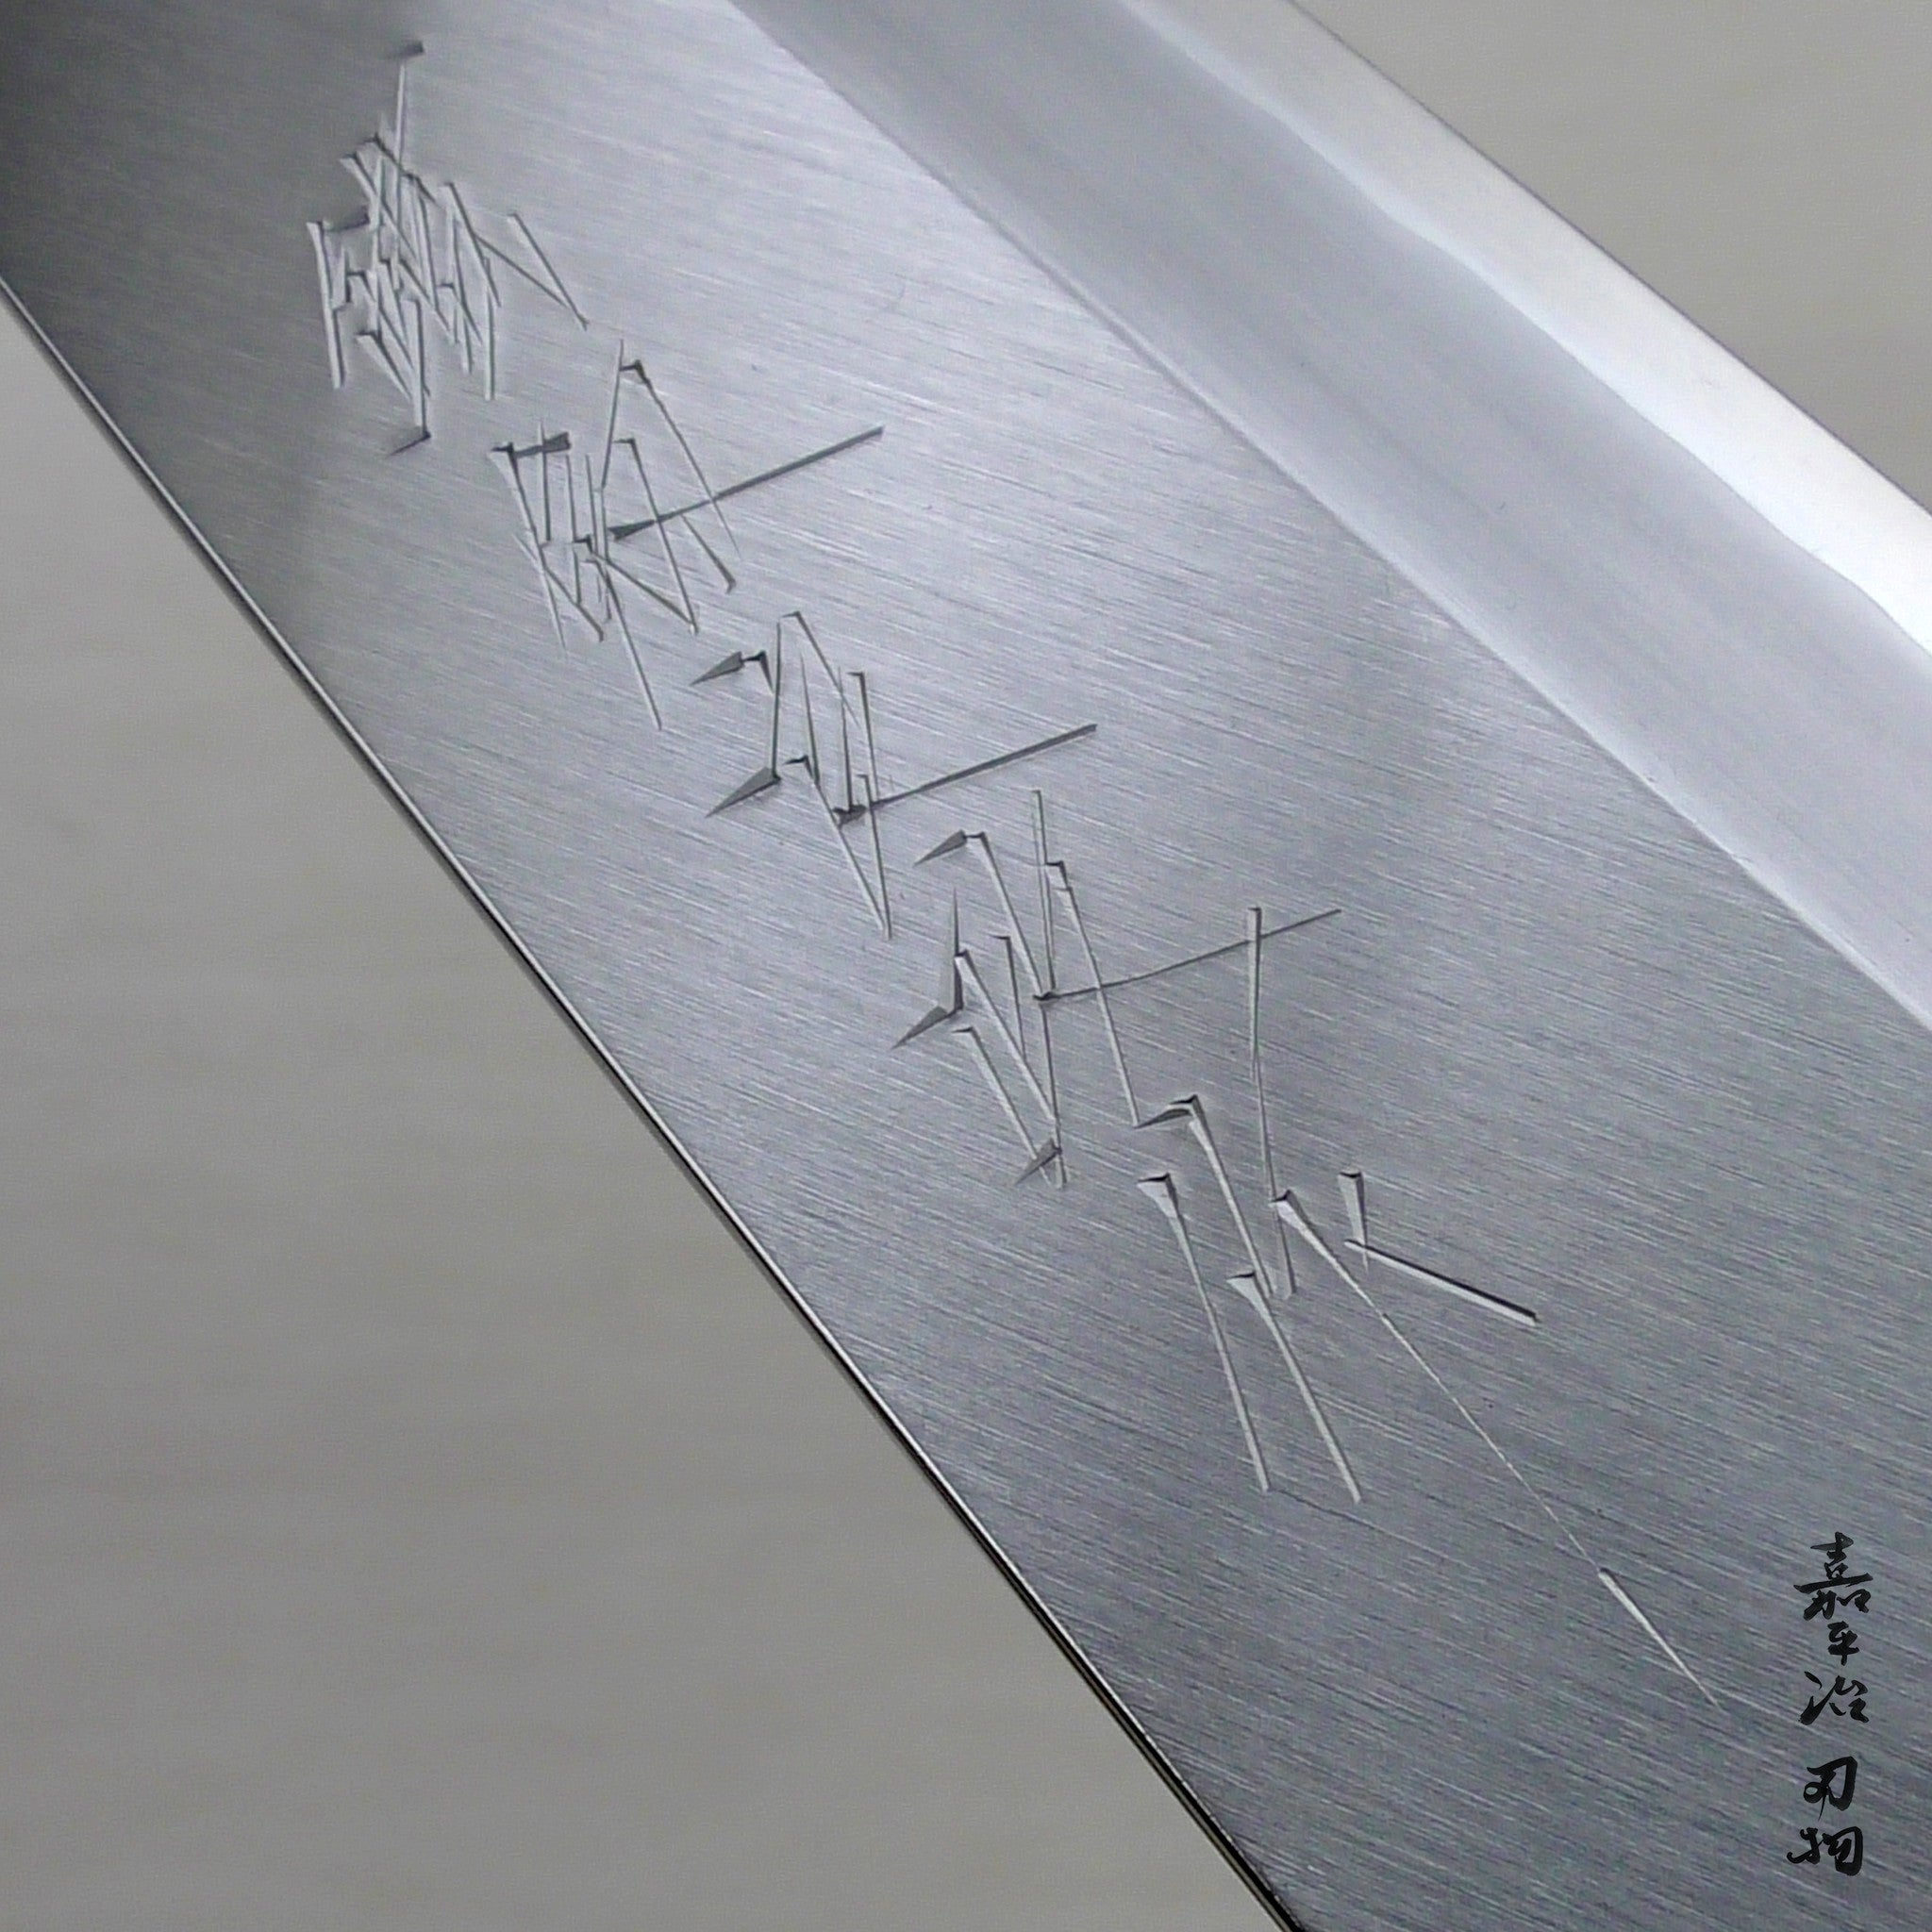 Tekken Yoshimasa VG10 HIT Damascus Hammered Santoku Japanese Knife